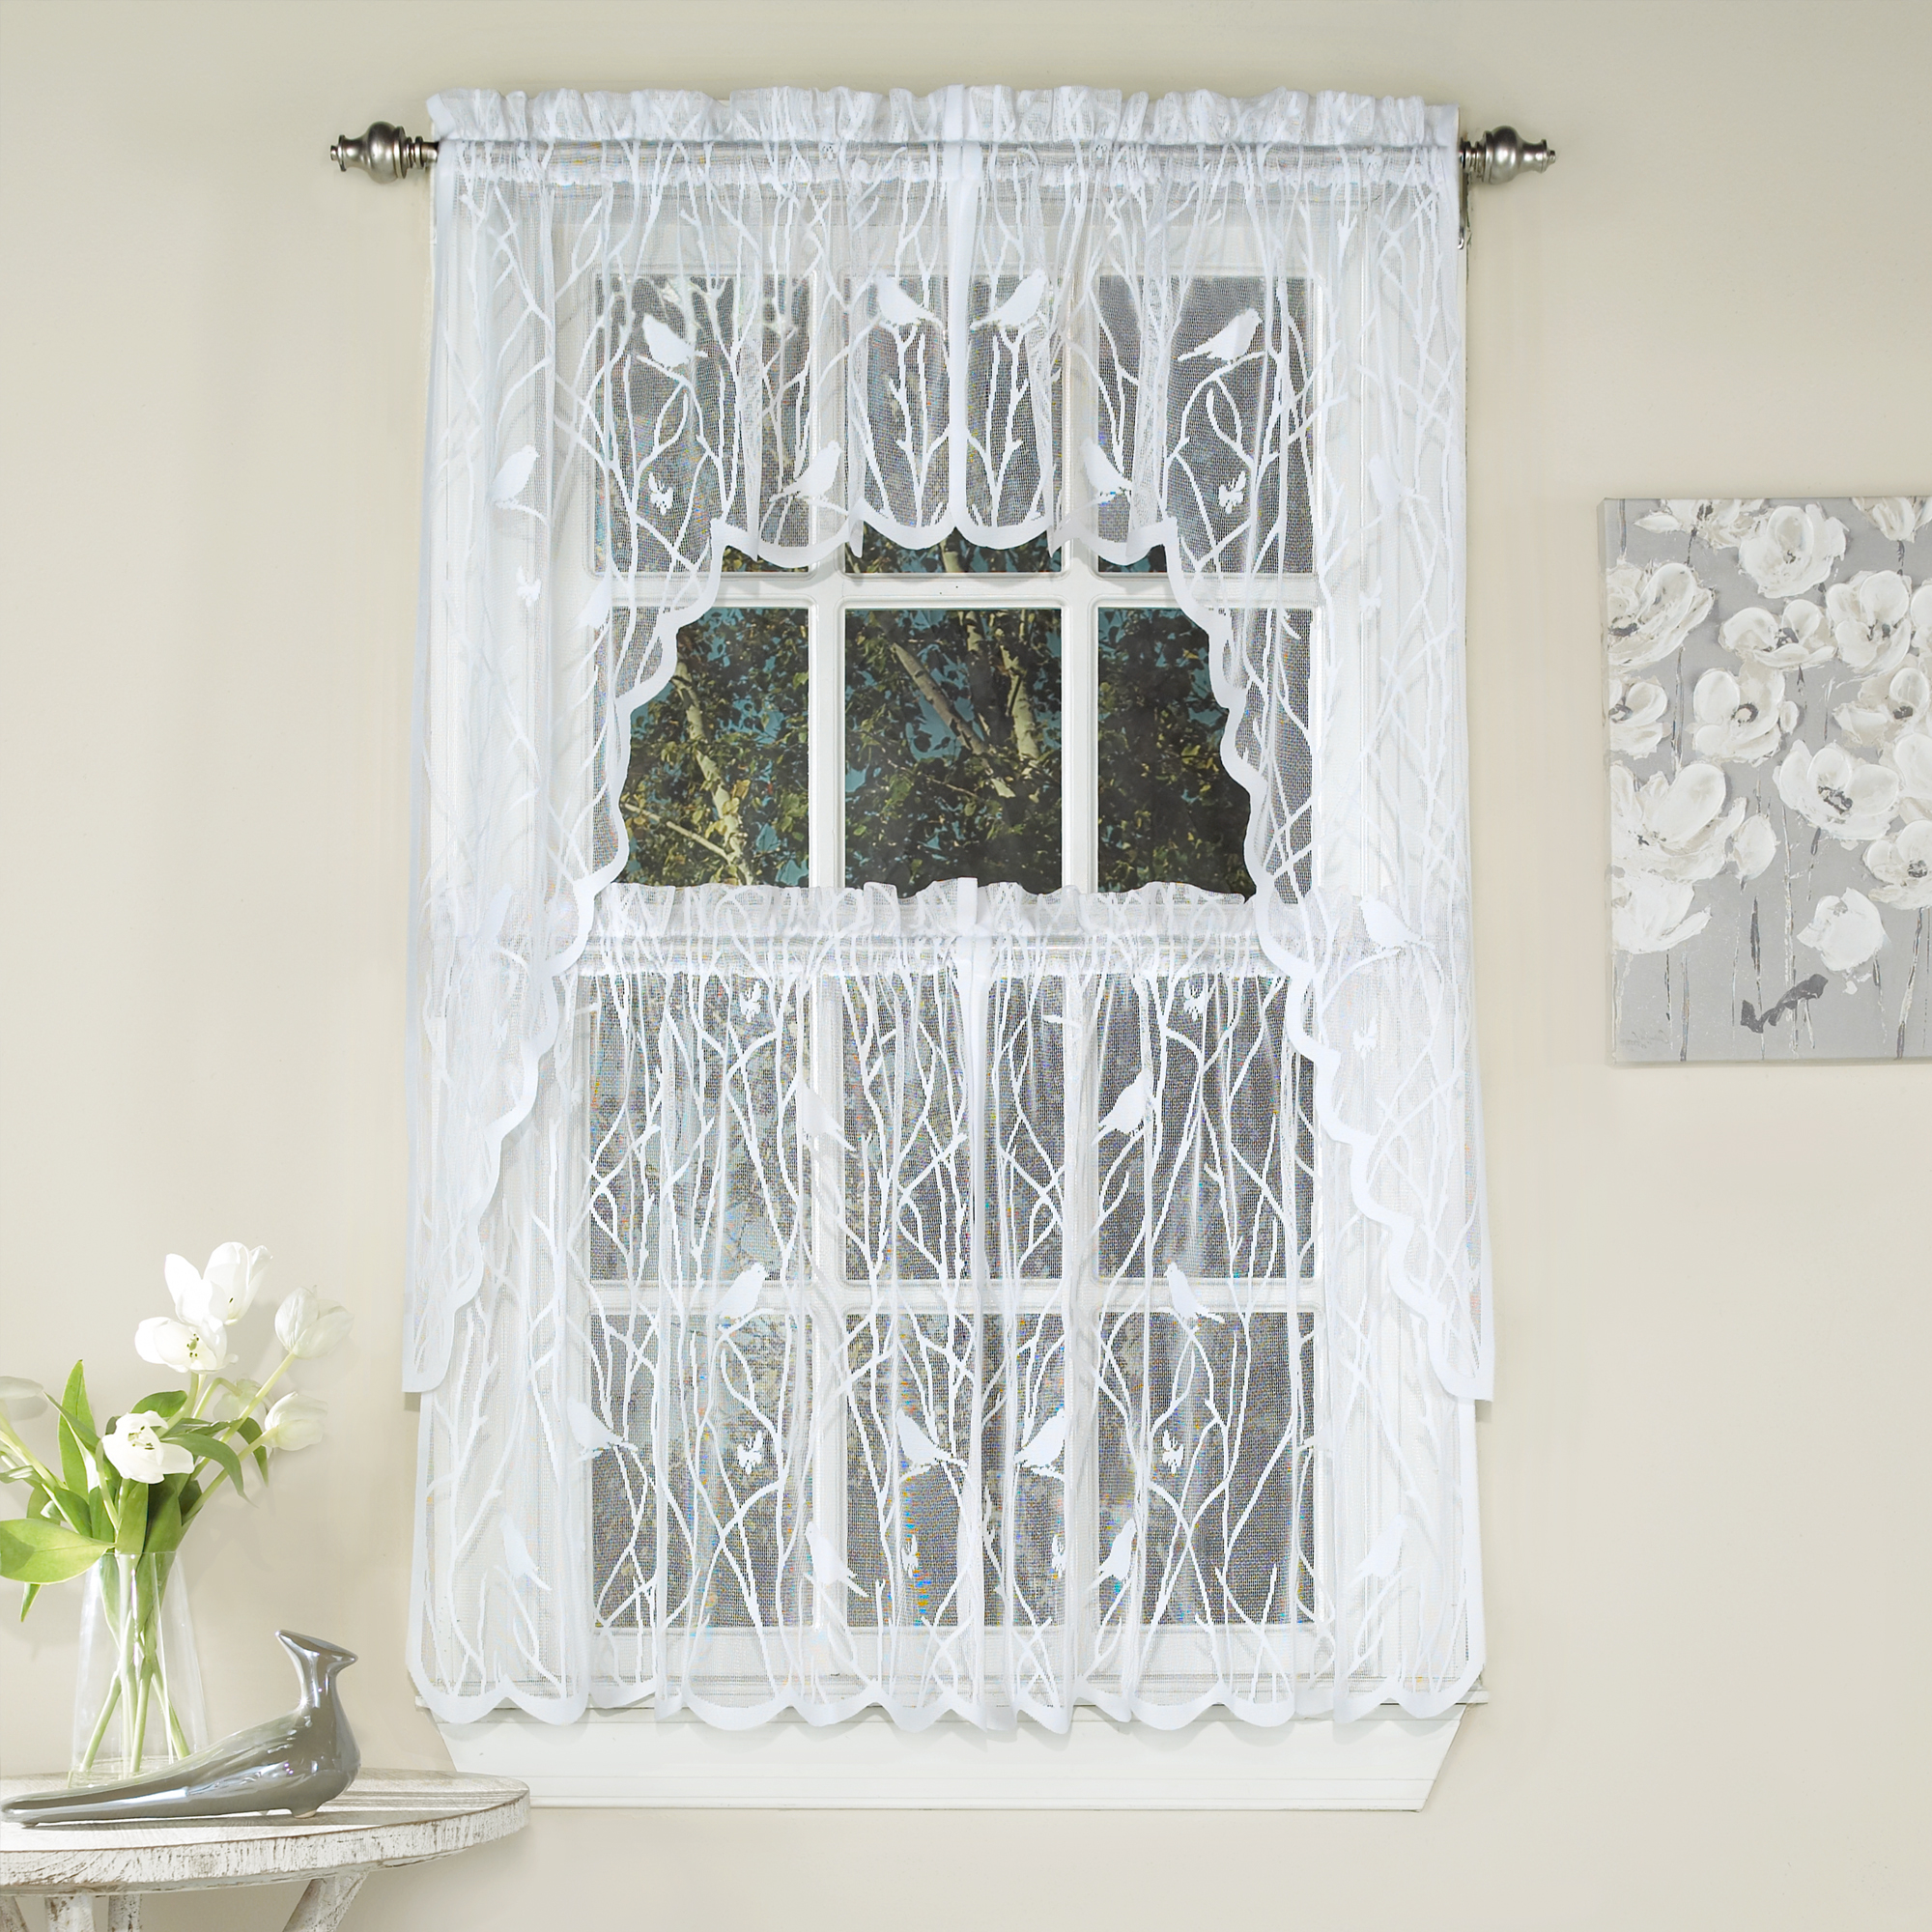 Featured Photo of White Knit Lace Bird Motif Window Curtain Tiers